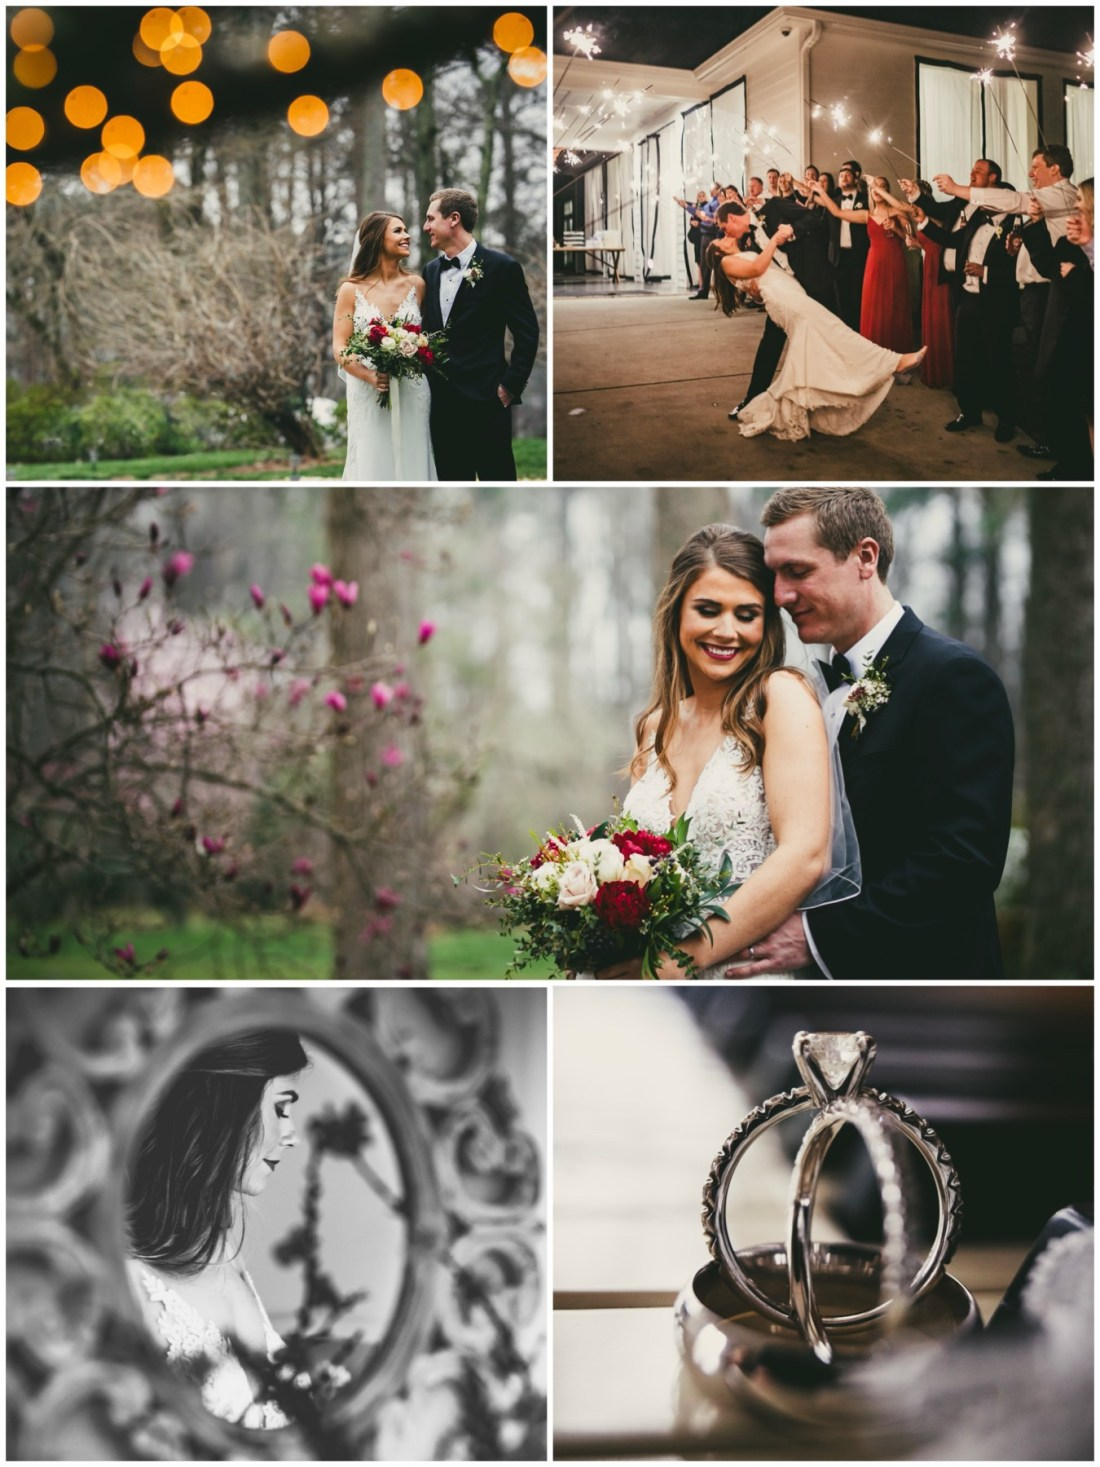 Atlanta wedding photographers spring wedding at little river farms.